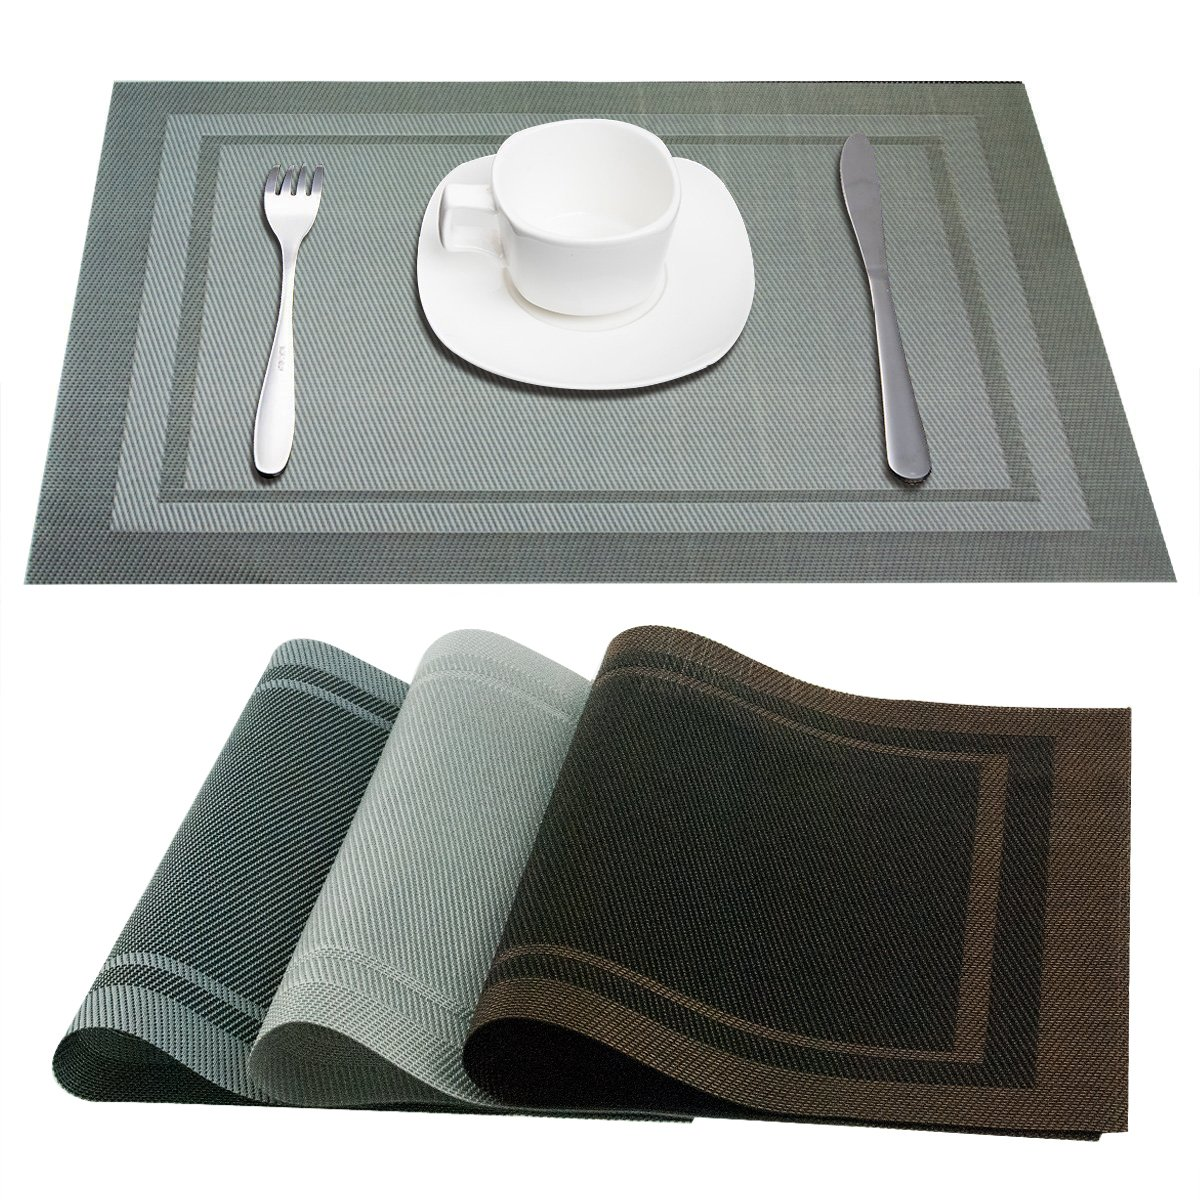 PVC Placemats Western Food Mats Vinyl Non-slip Heat Insulation Anti-skid Stain-resistant and Waterproof Western Food Placemats are Suitable for Family Hotel (6 Packs, Silver Grey) by Bingo Arts